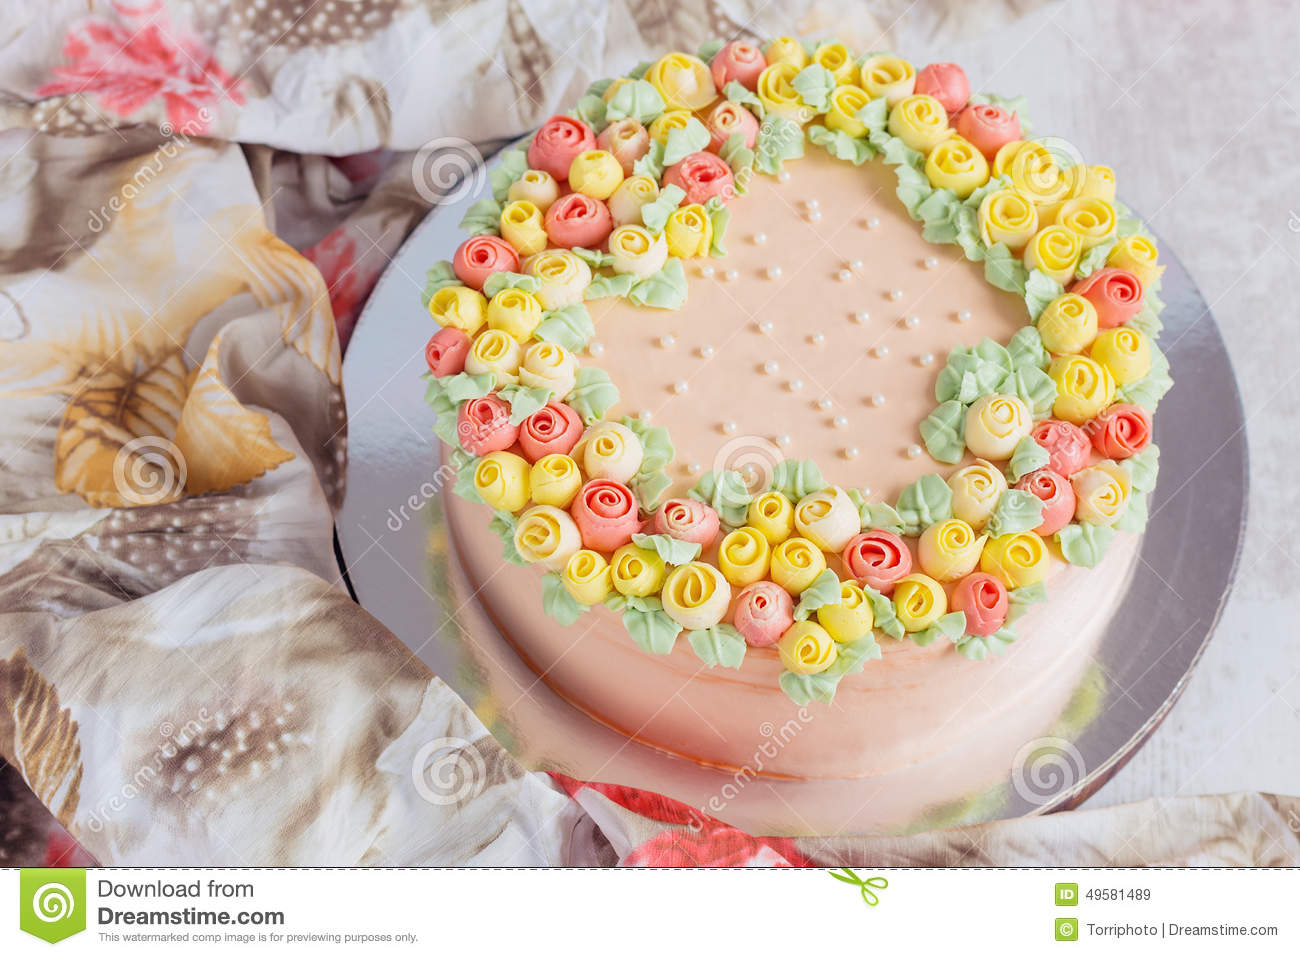 Homemade Cake Decoration Without Cream : Cream Cake Decorated With Small Yellow And Pink Roses ...